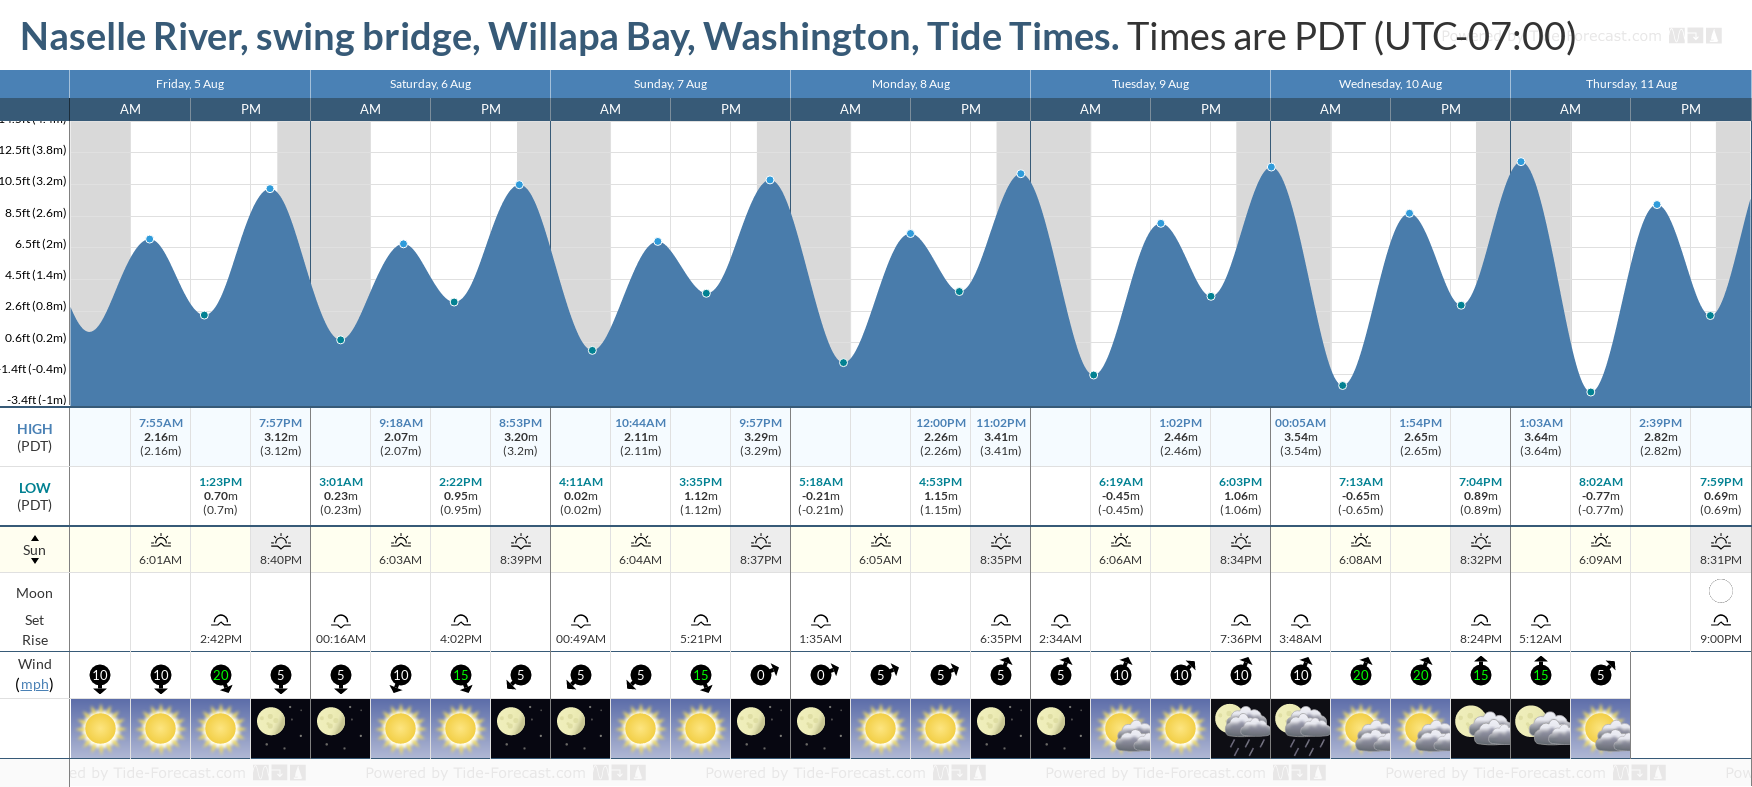 Naselle River, swing bridge, Willapa Bay, Washington Tide Chart including high and low tide tide times for the next 7 days